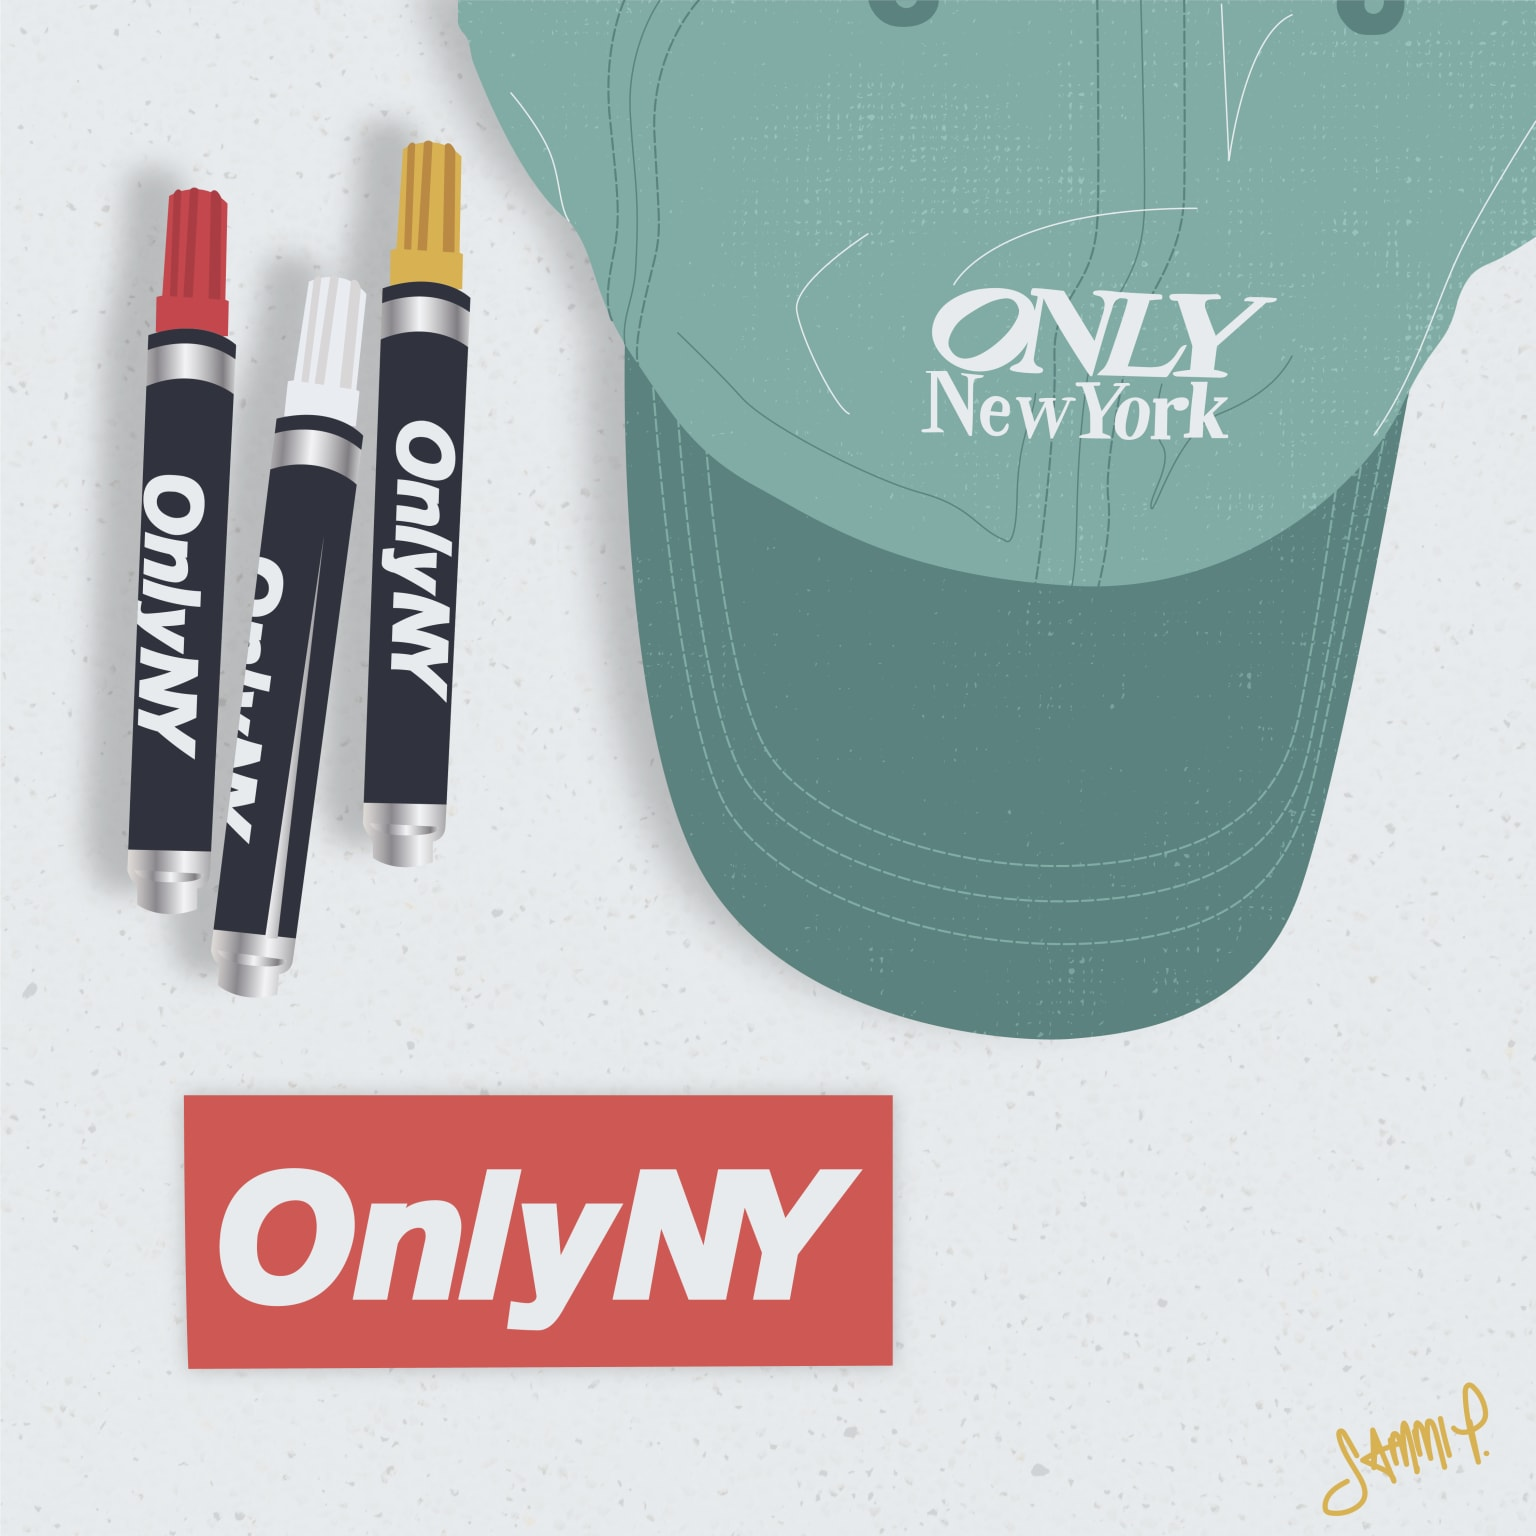 Only New York